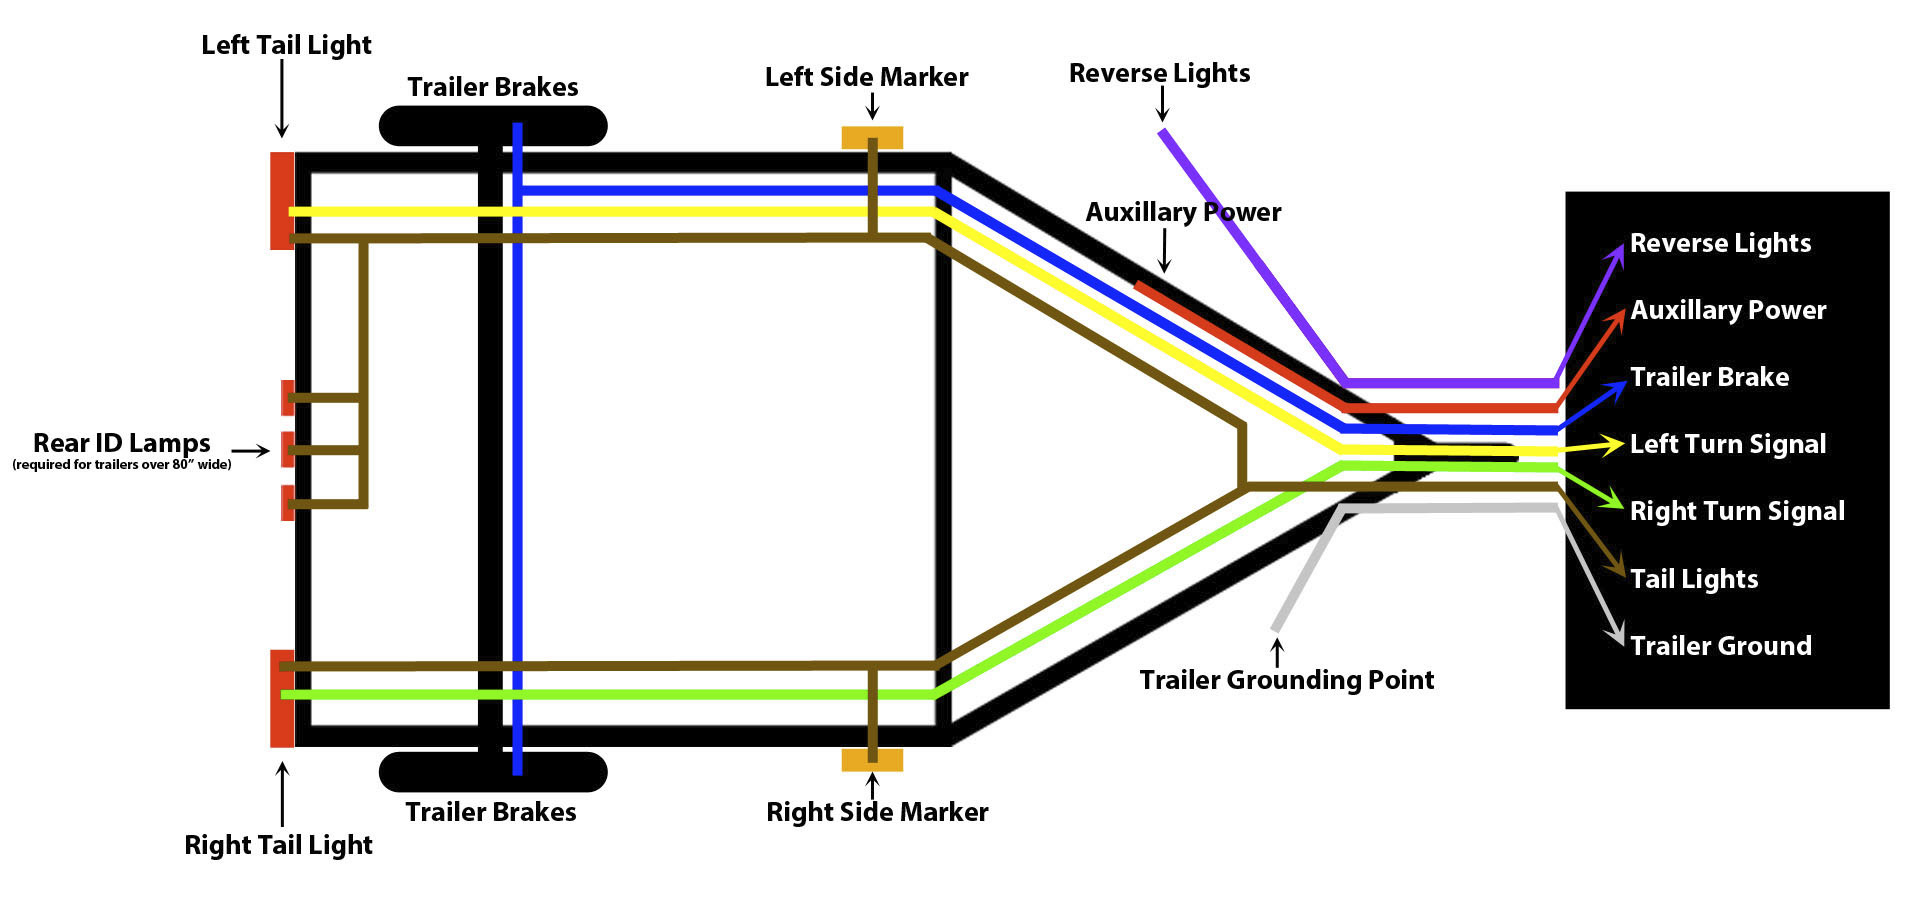 How To Wire Trailer Lights - Trailer Wiring Guide & Videos - 6 Pin Trailer Plug Wiring Diagram